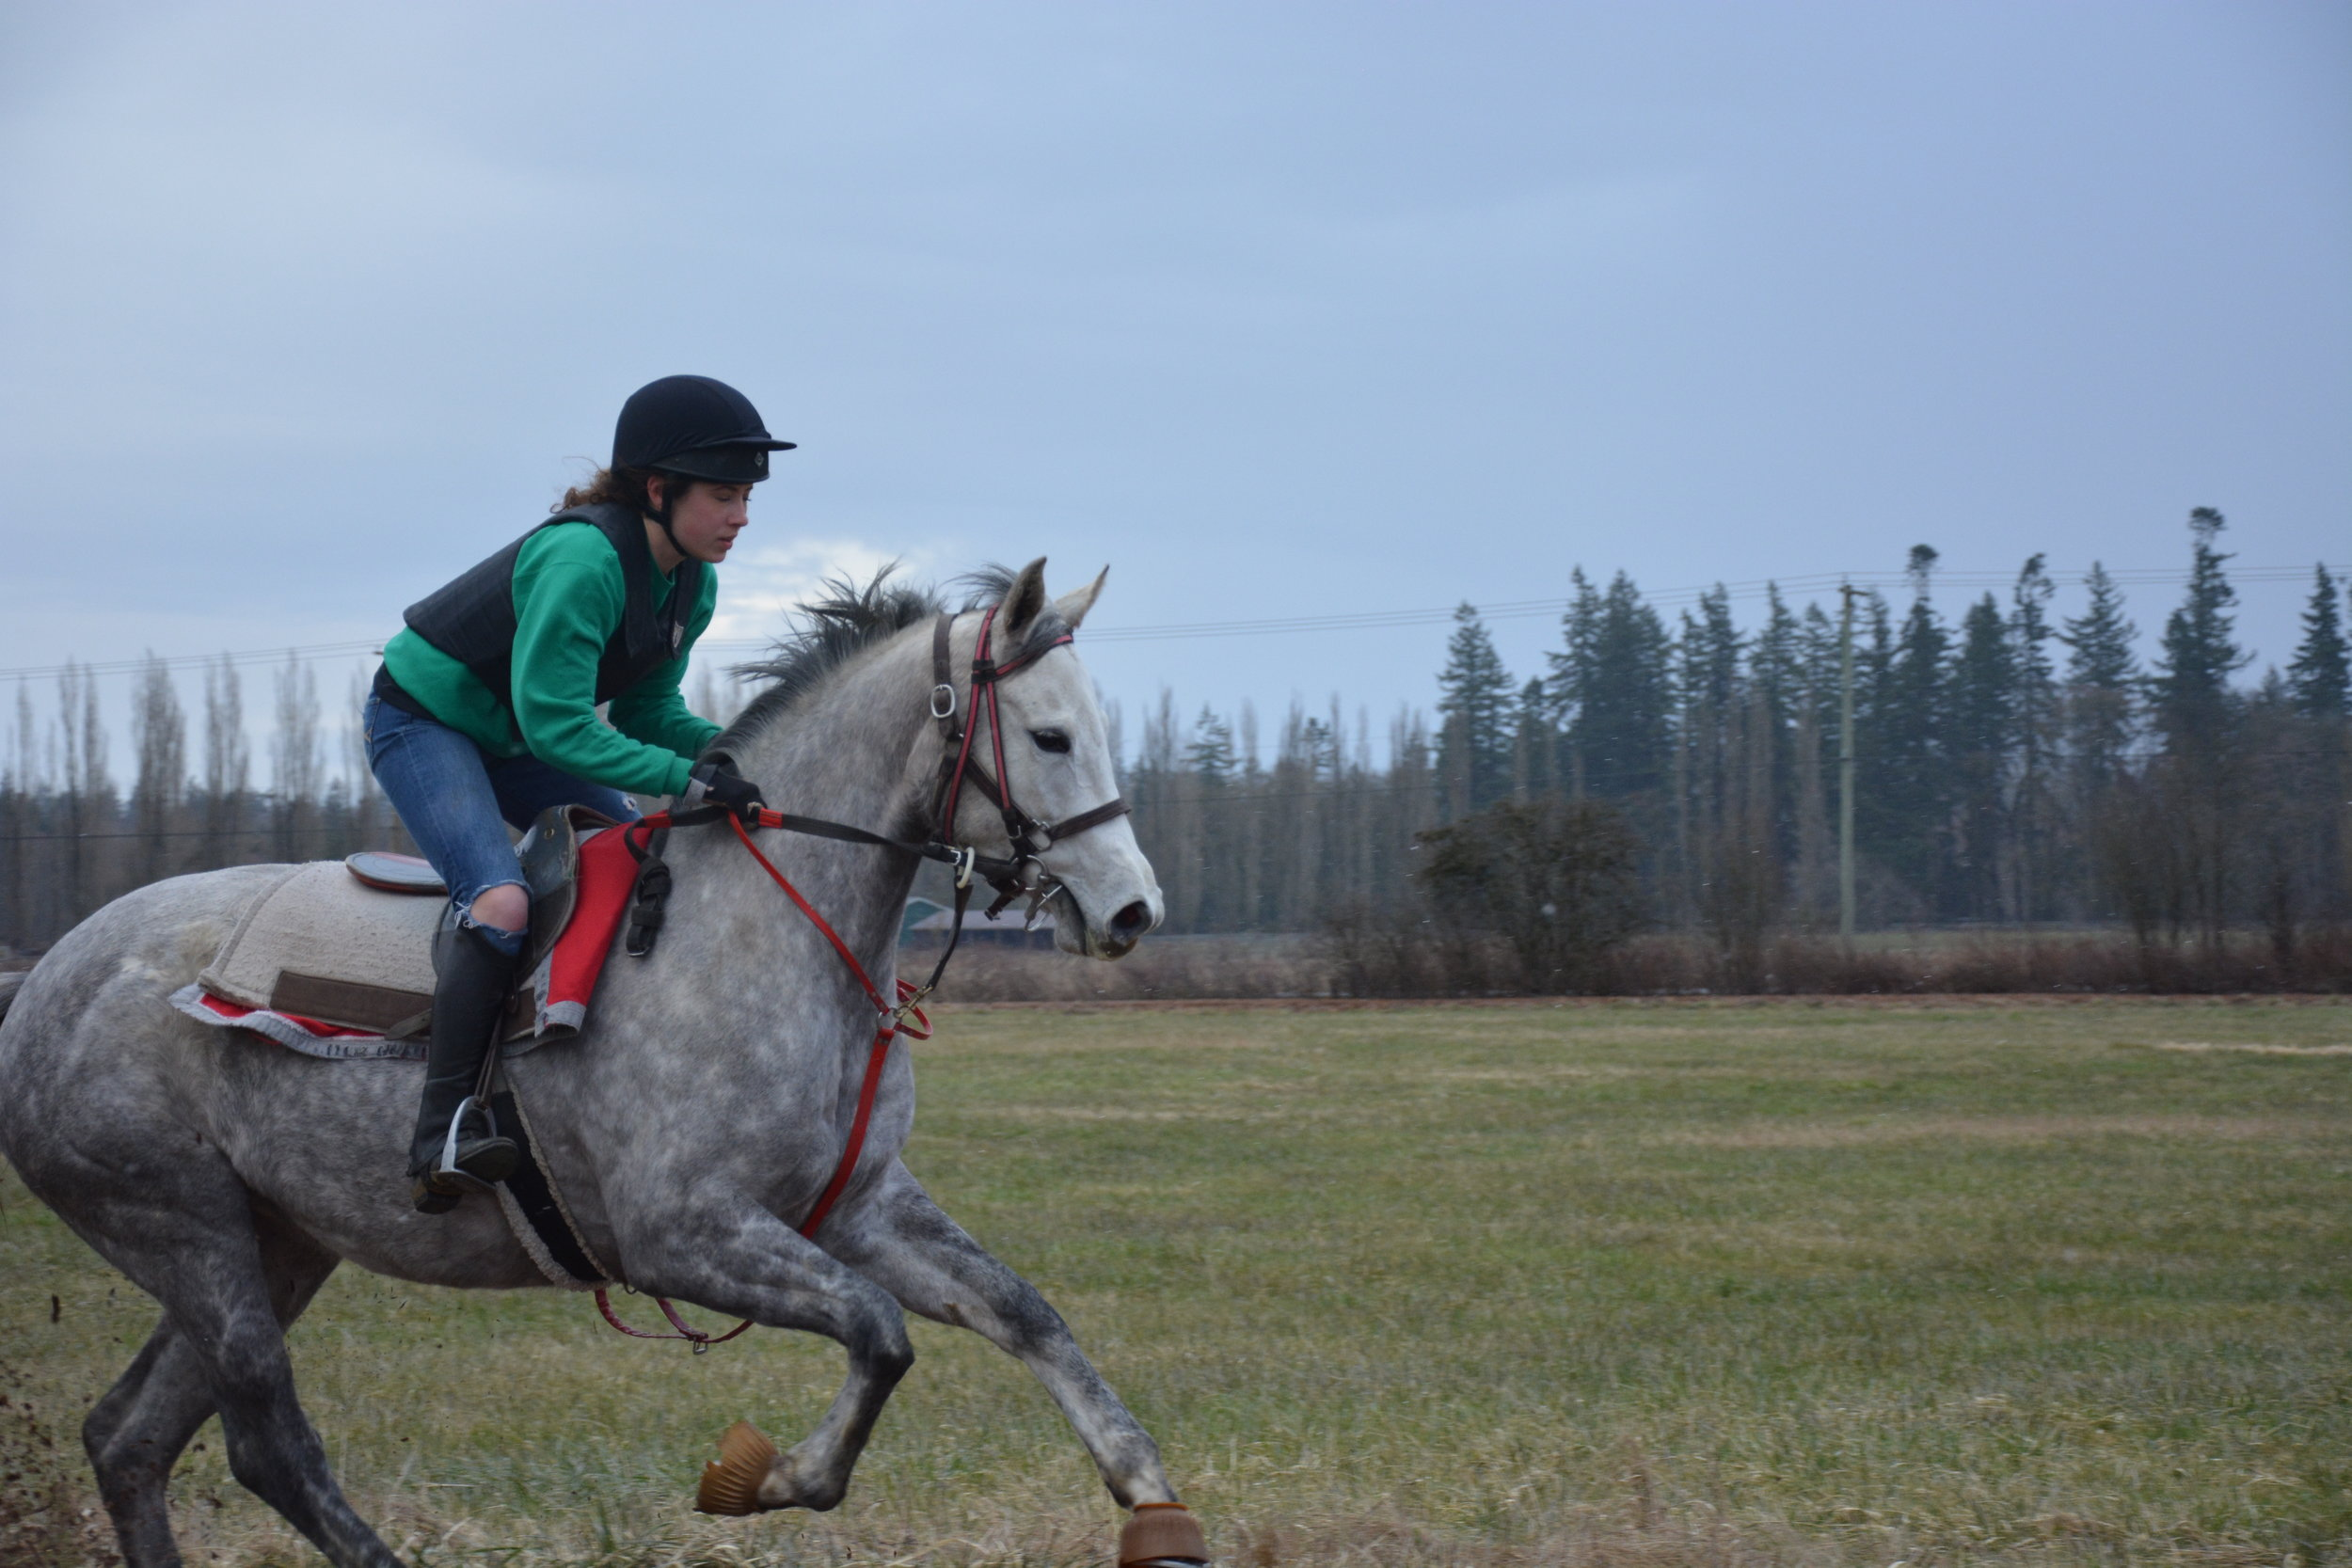 Galloping Ava, a 3y/o filly that came from Florida last year.